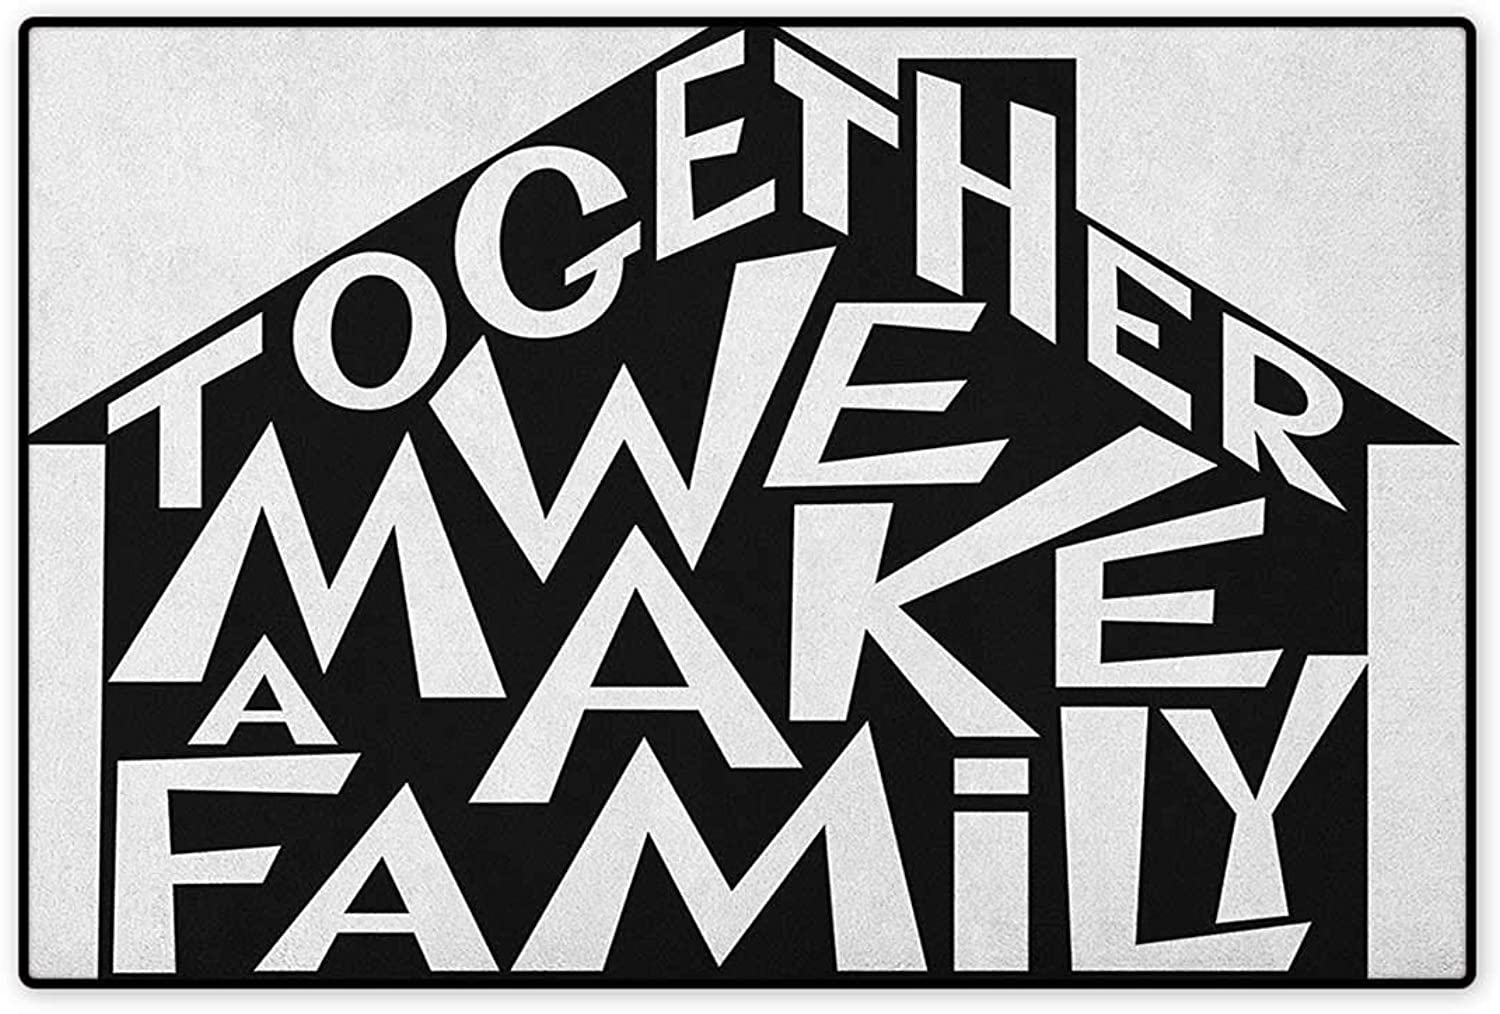 Family,Door Mat Non Slip,Together We Make a Family Shaped as a House Stylized Lettering Hipster Design,Floor Mat for Tub,Black and White,Size,32 x48  (W80cm x L120cm)